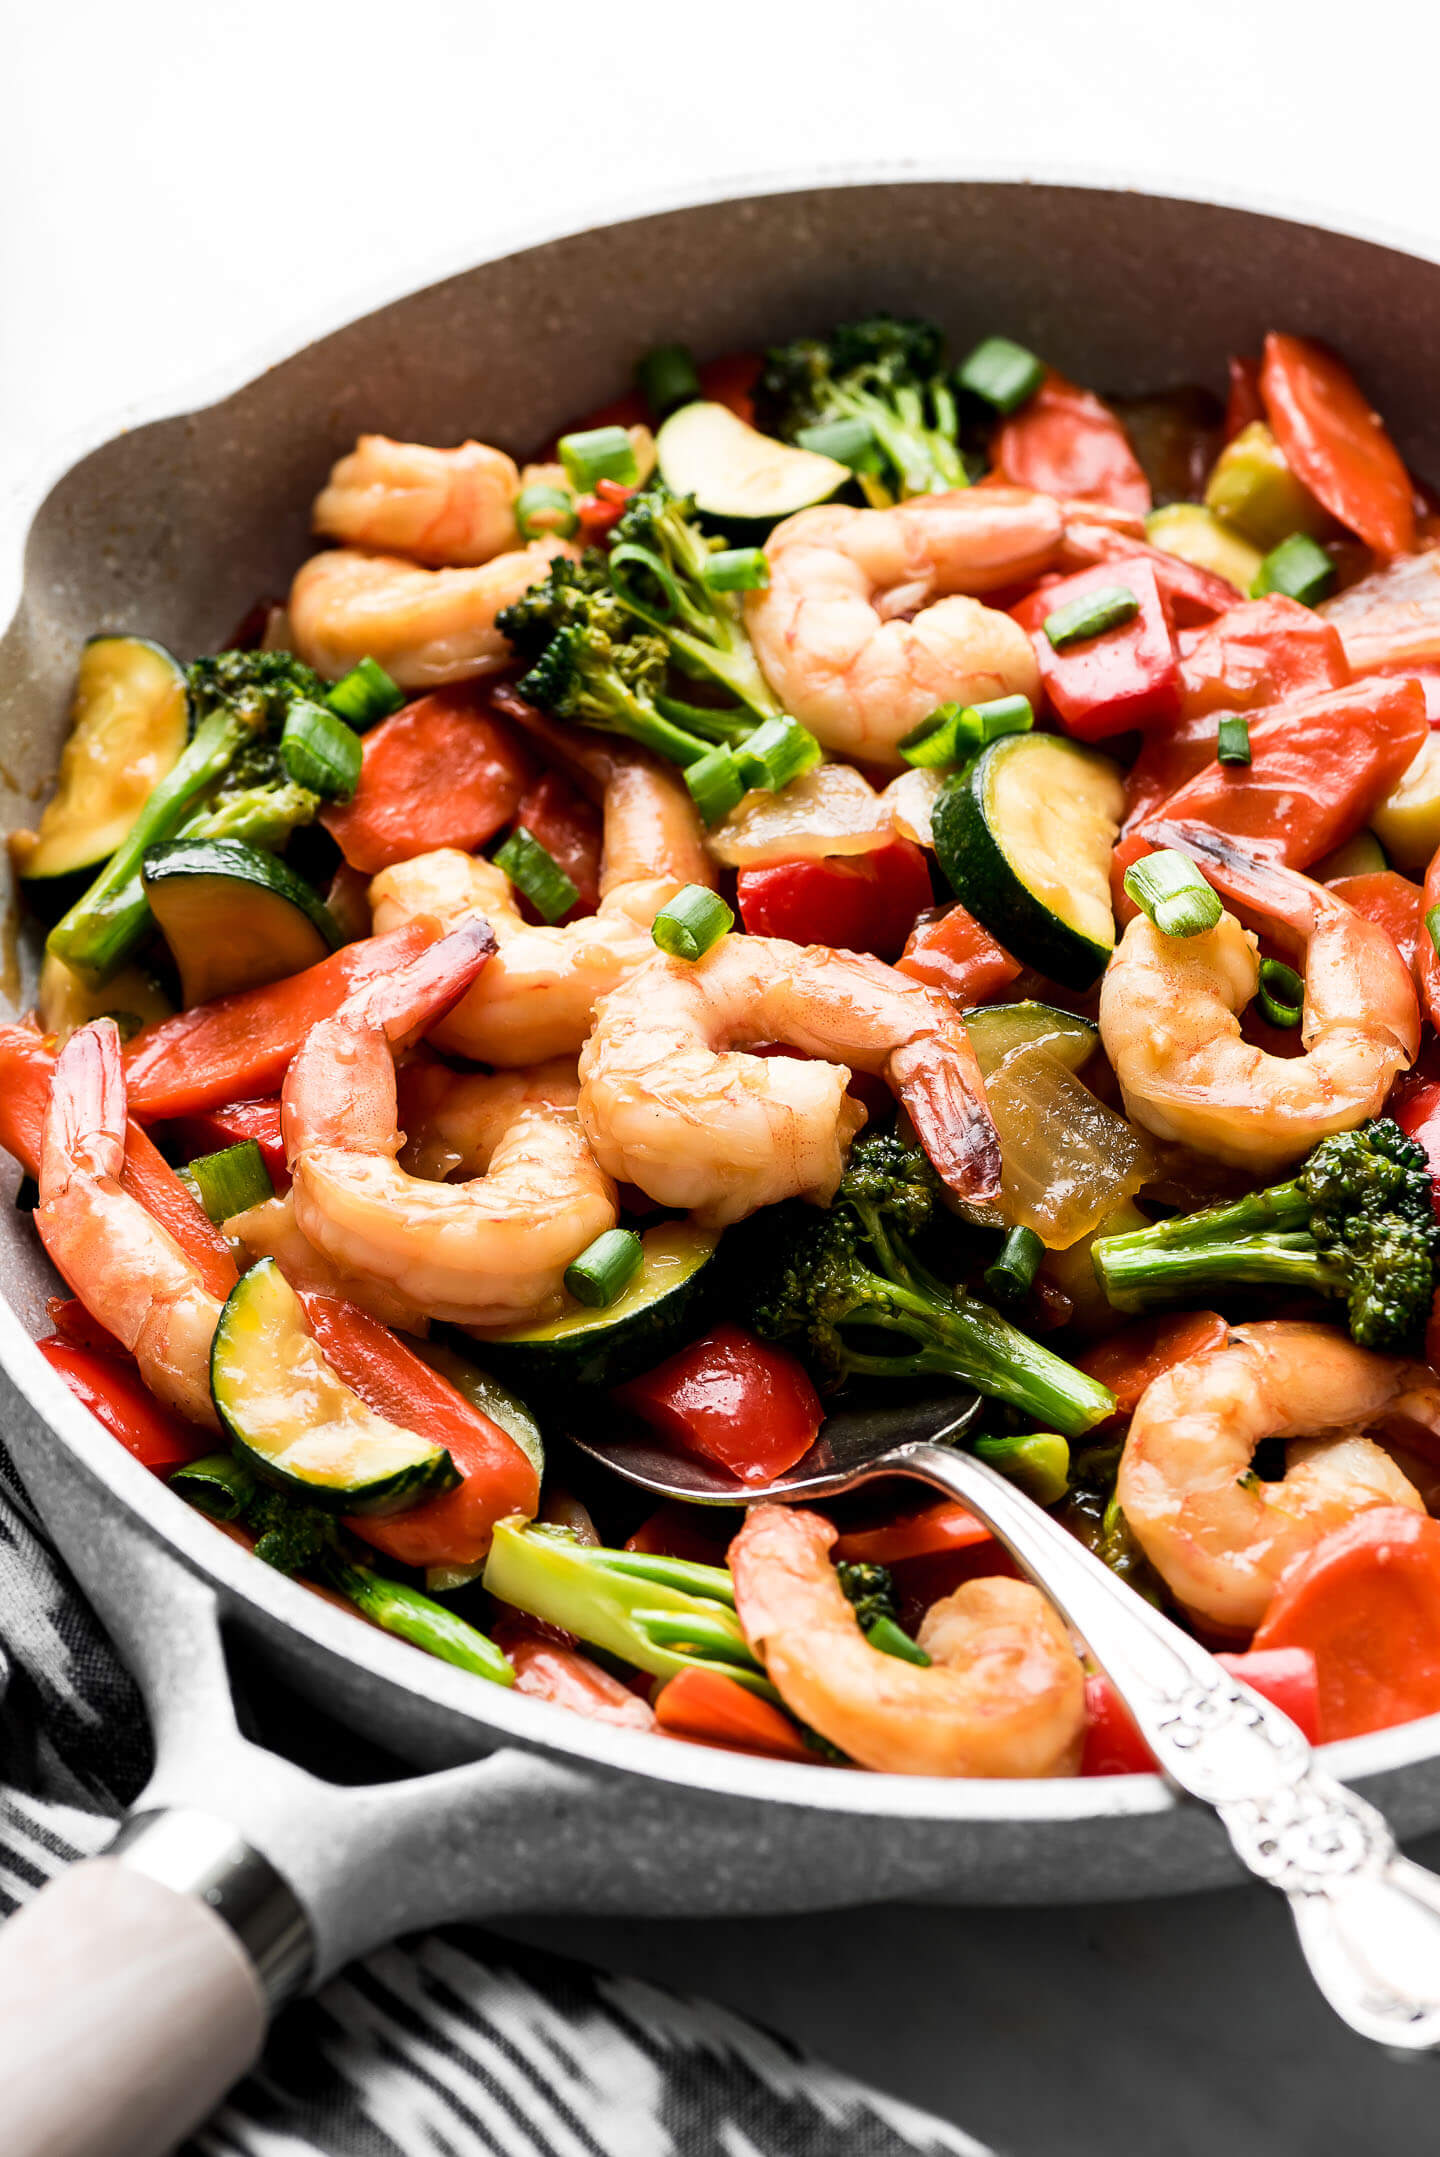 A skillet full of Shrimp Stir Fry and a serving spoon in the side.